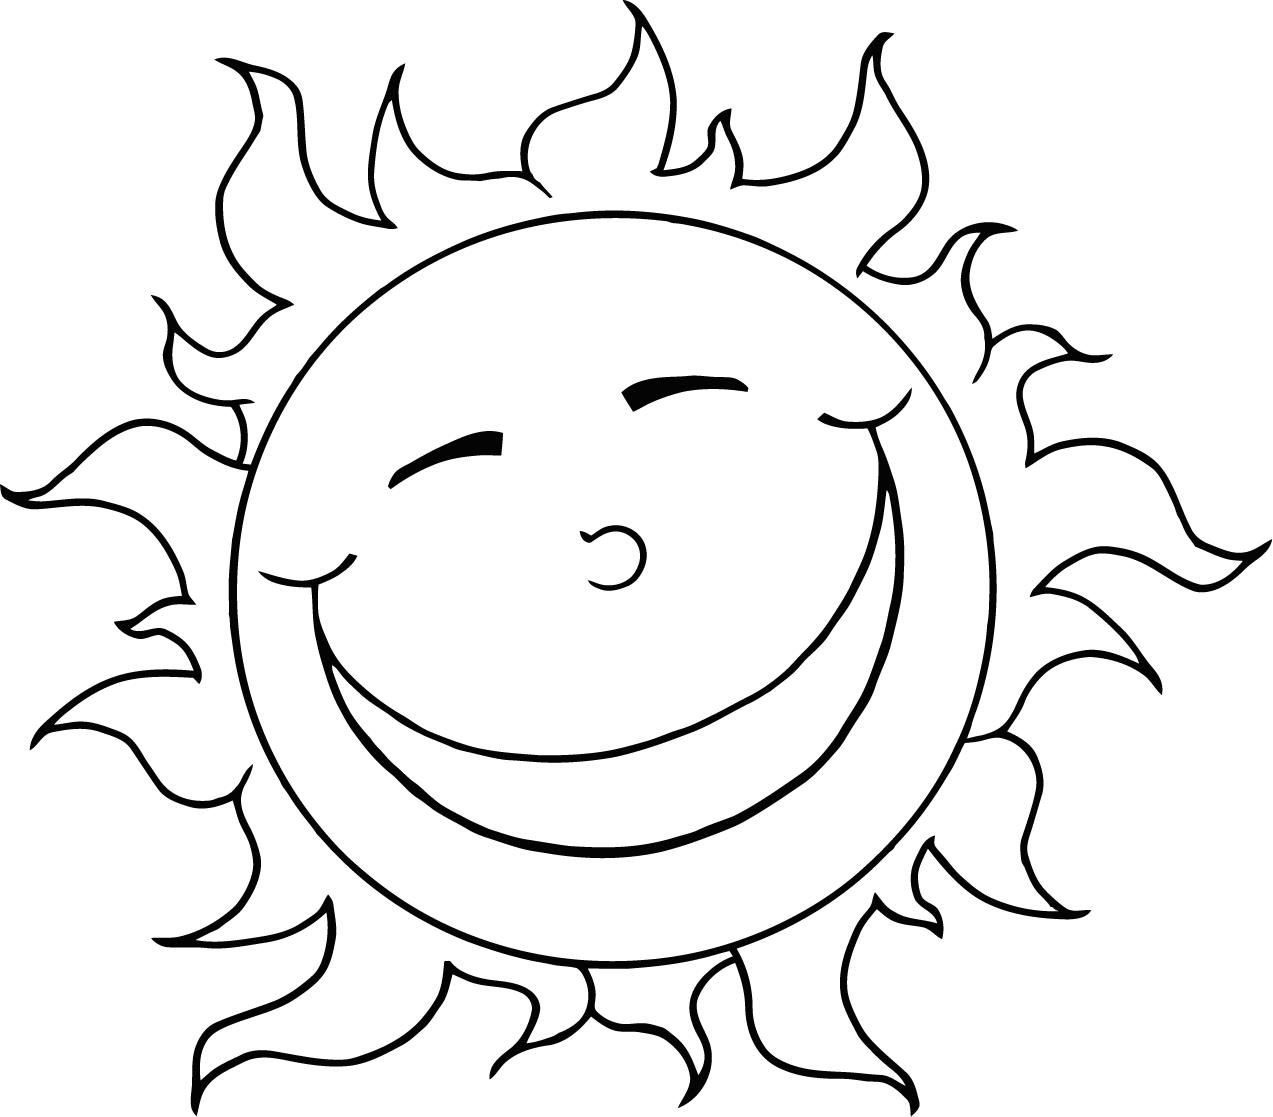 1273x1117 Sun Coloring Pages To Download And Print For Free Sun Coloring